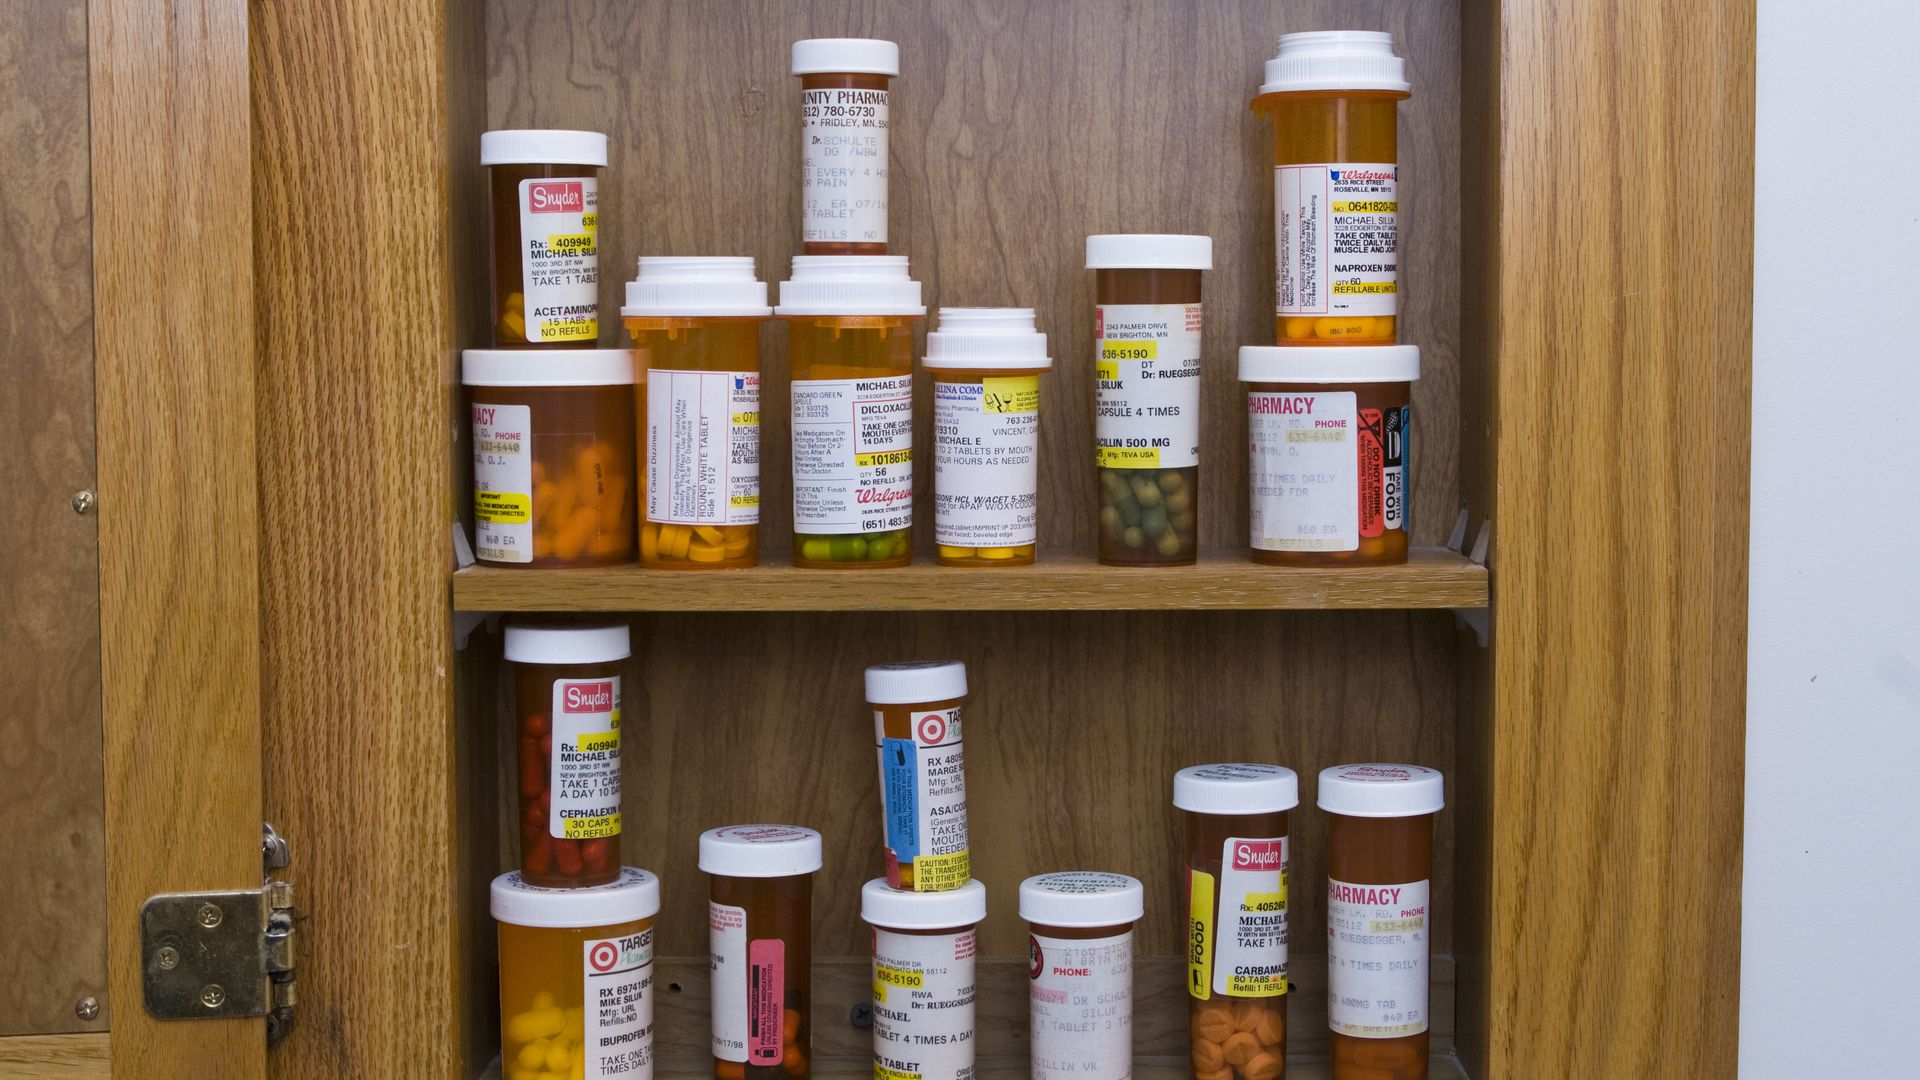 Cabinet full of pills